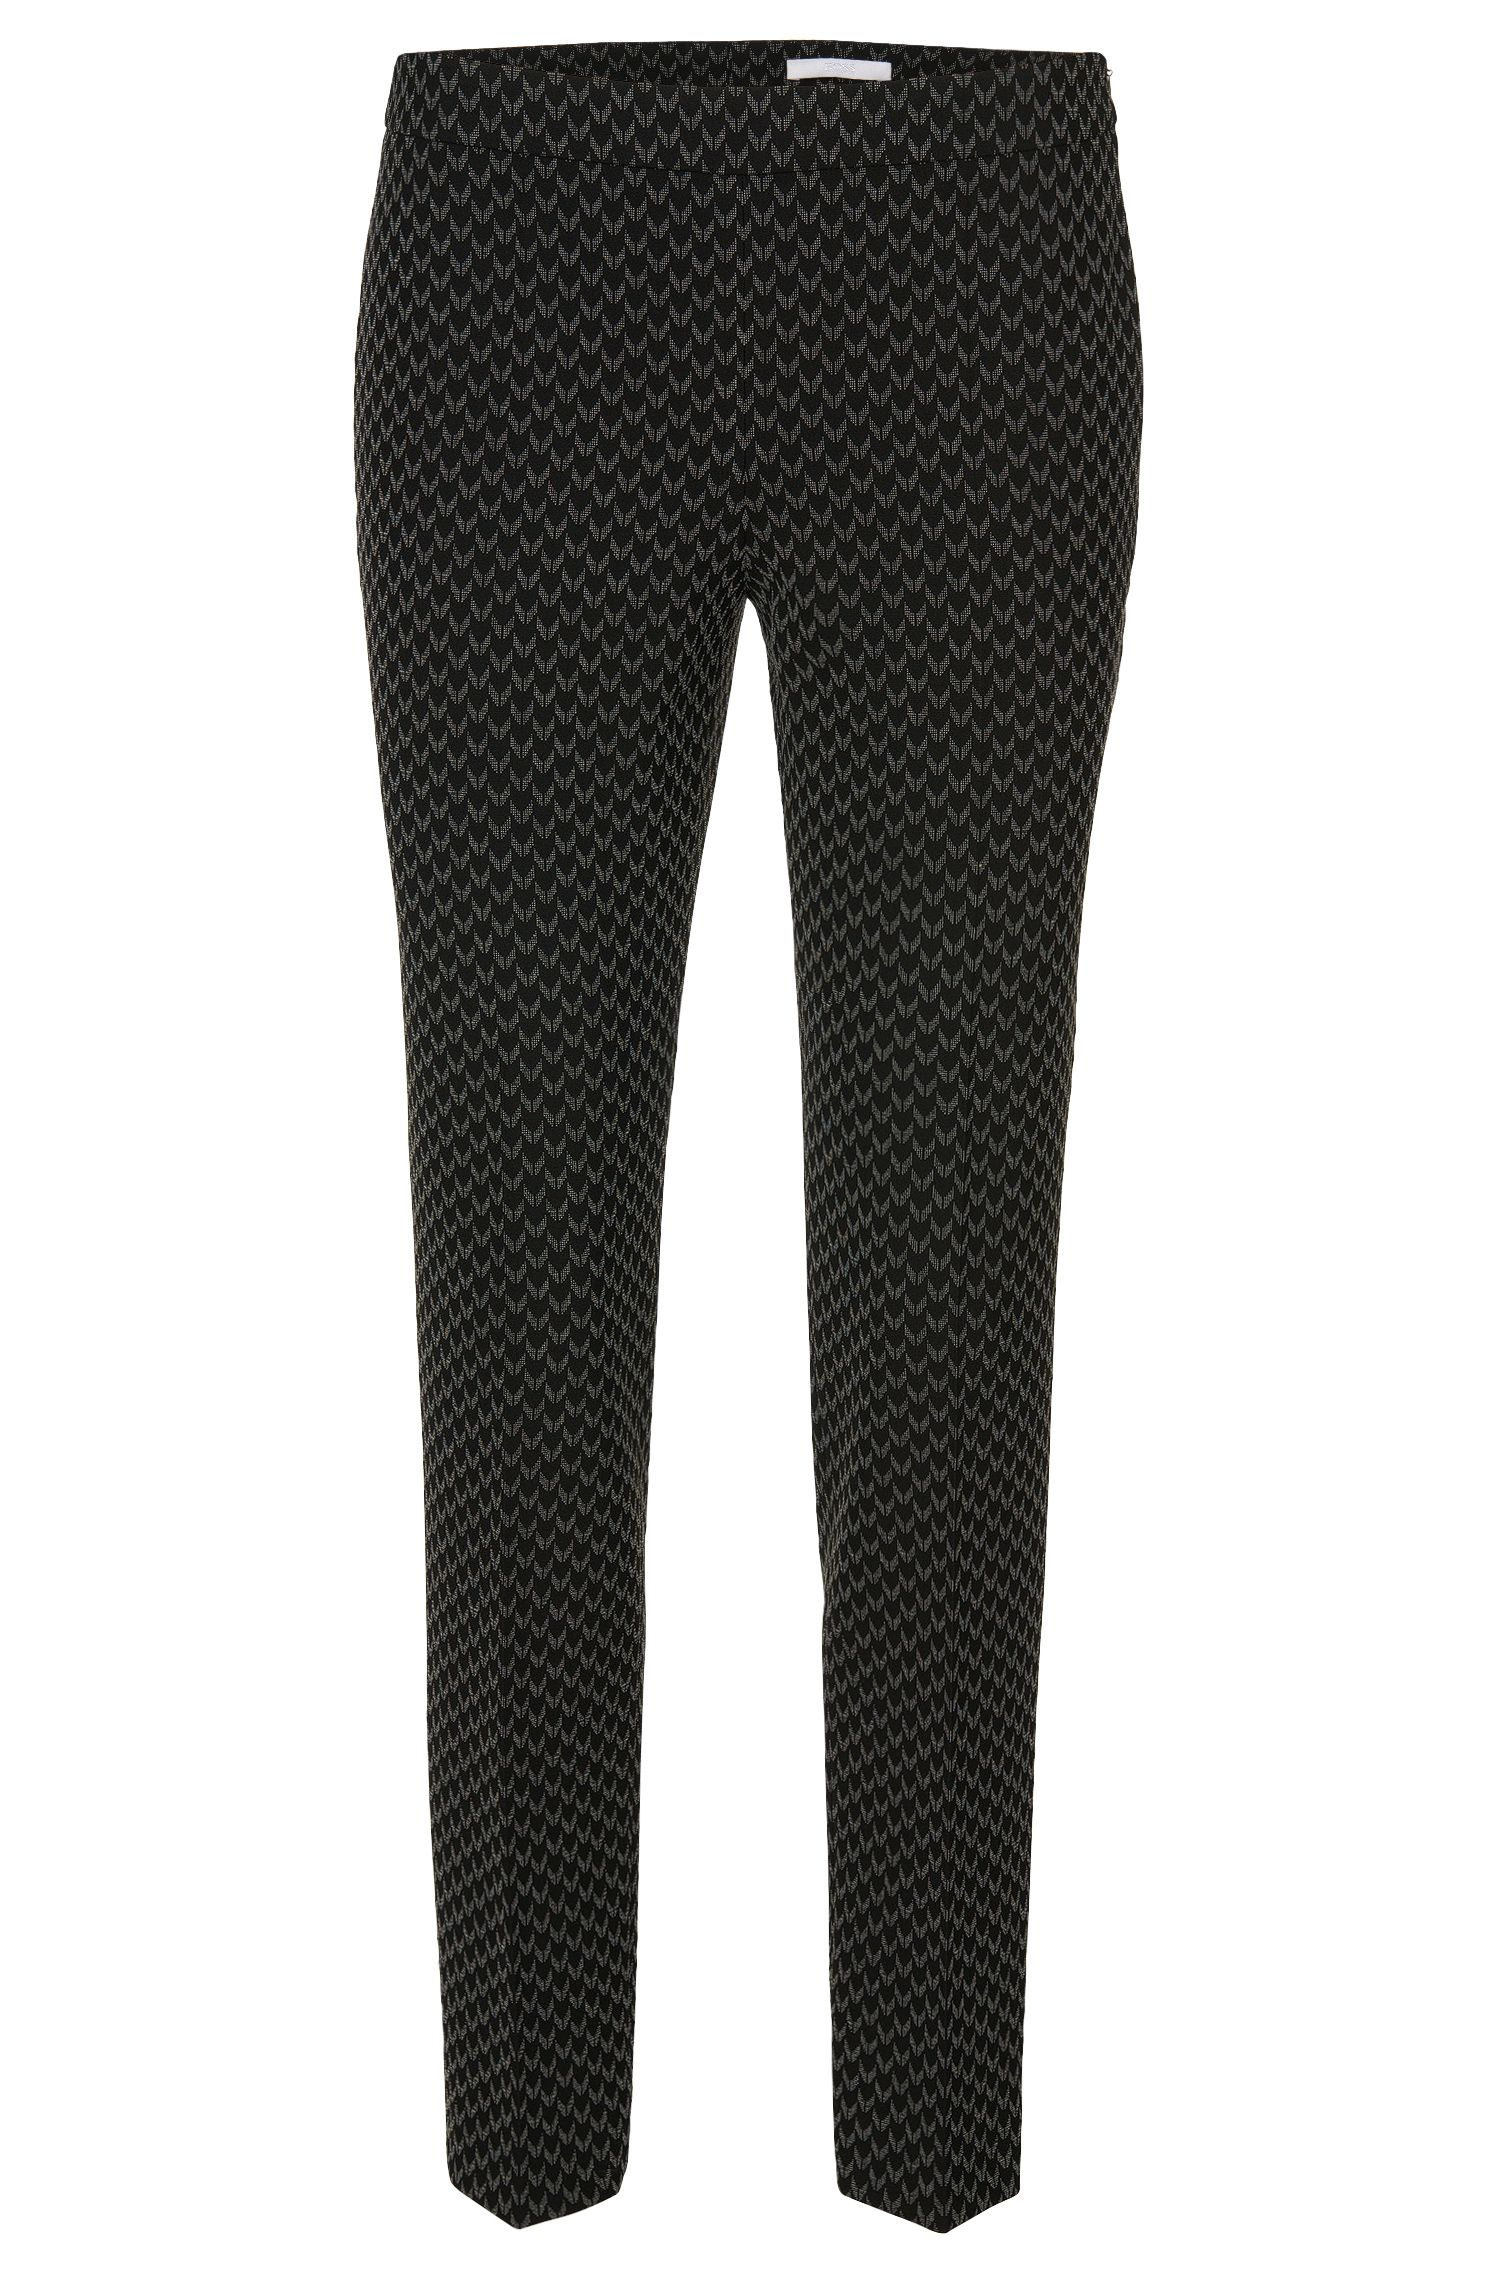 Pantalon Slim Fit au motif allover : « Tiluna_Sidezip1 »